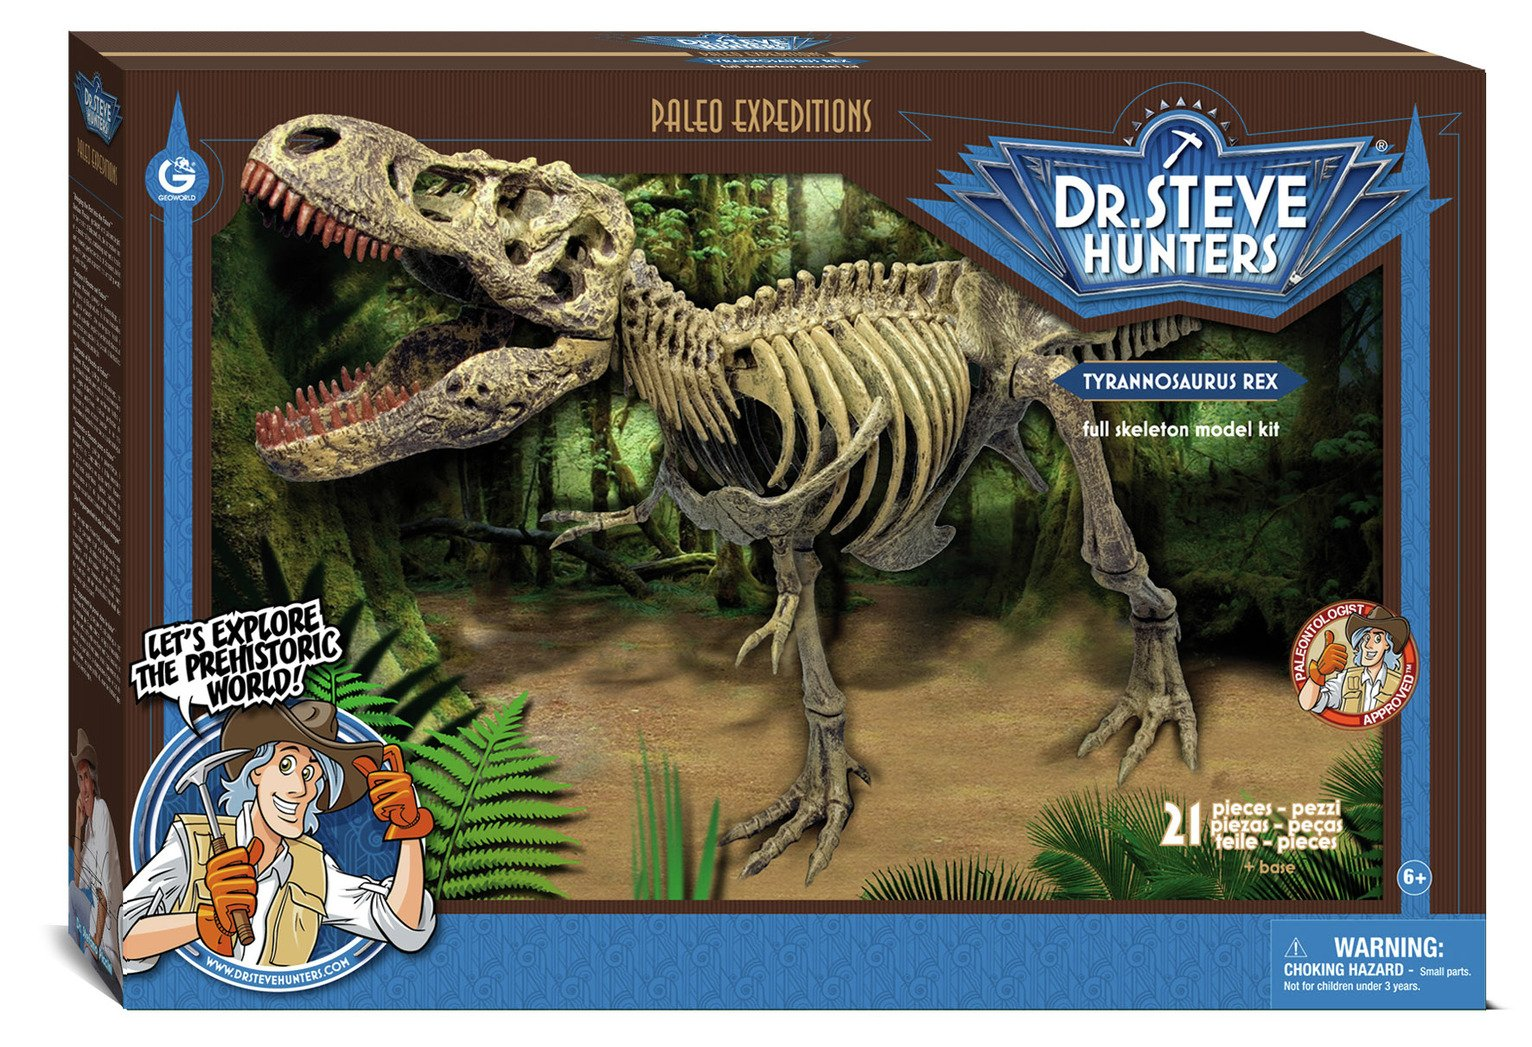 Dr Steve Hunters T-Rex E Model Kit